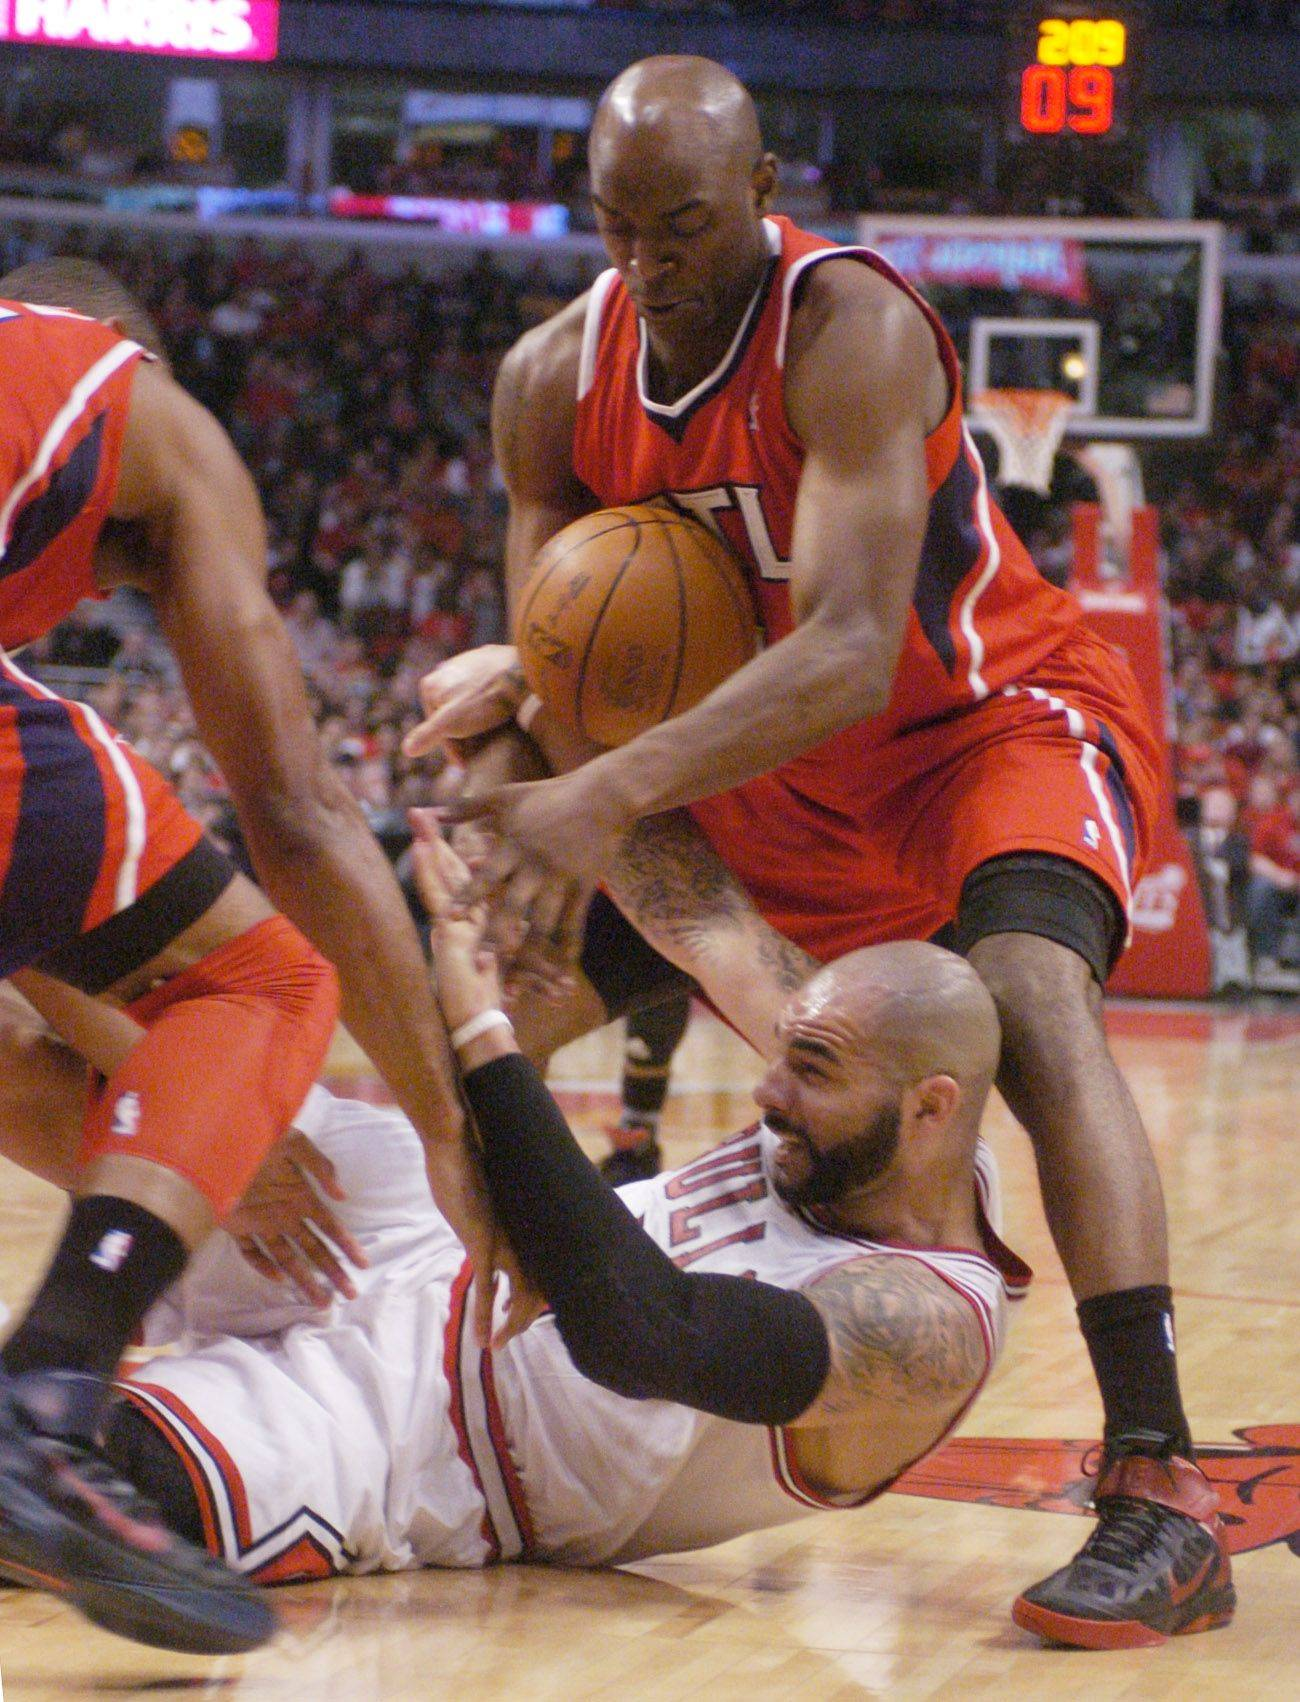 JOE LEWNARD/jlewnard@dailyherald.comCarlos Boozer of the Bulls loses the ball as he falls between Al Horford, left, and Damien Wilkins of the Atlanta Hawks during Monday's game at the United Center.